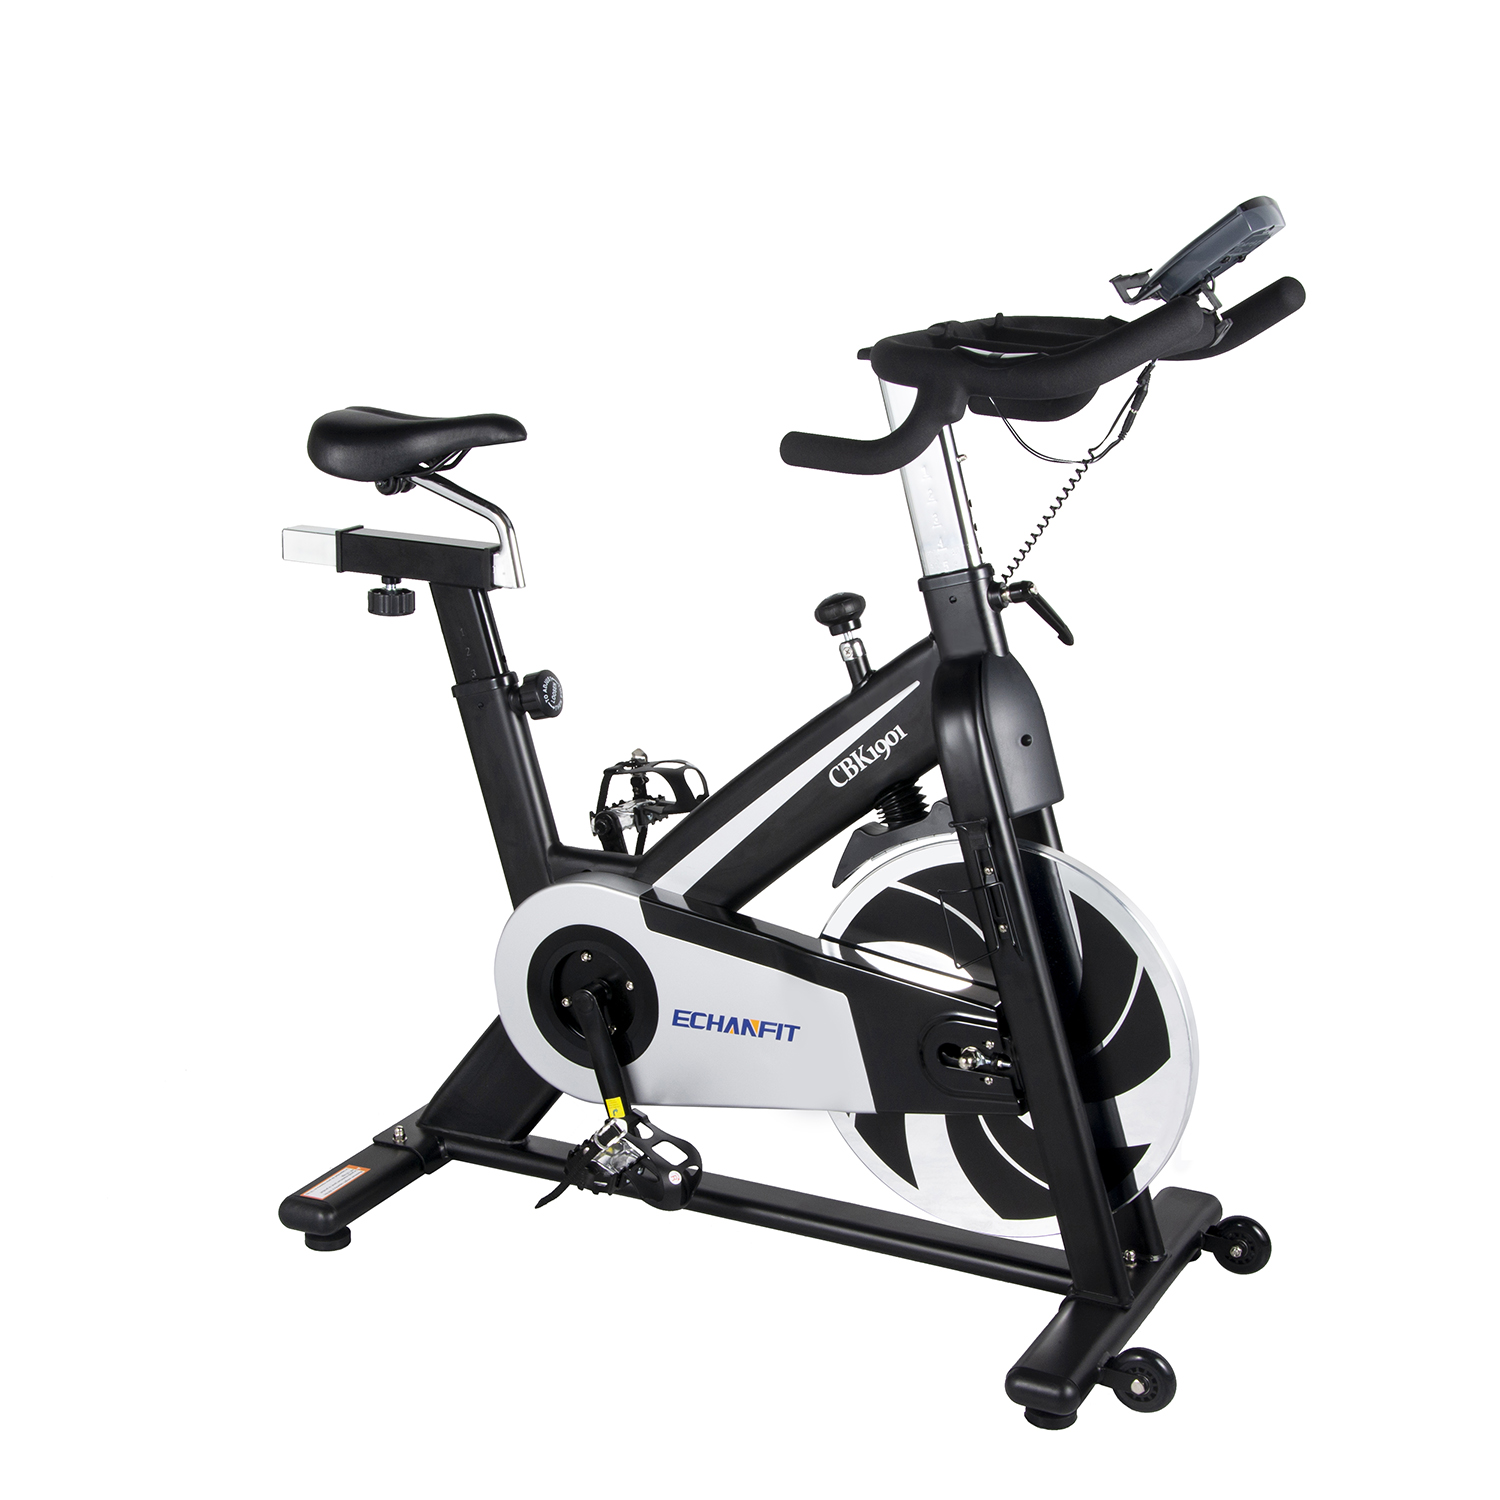 Details about Indoor Cycling Exercise Bike, Magnetic Belt Drive Indoor Bike, Home Gym Trainer